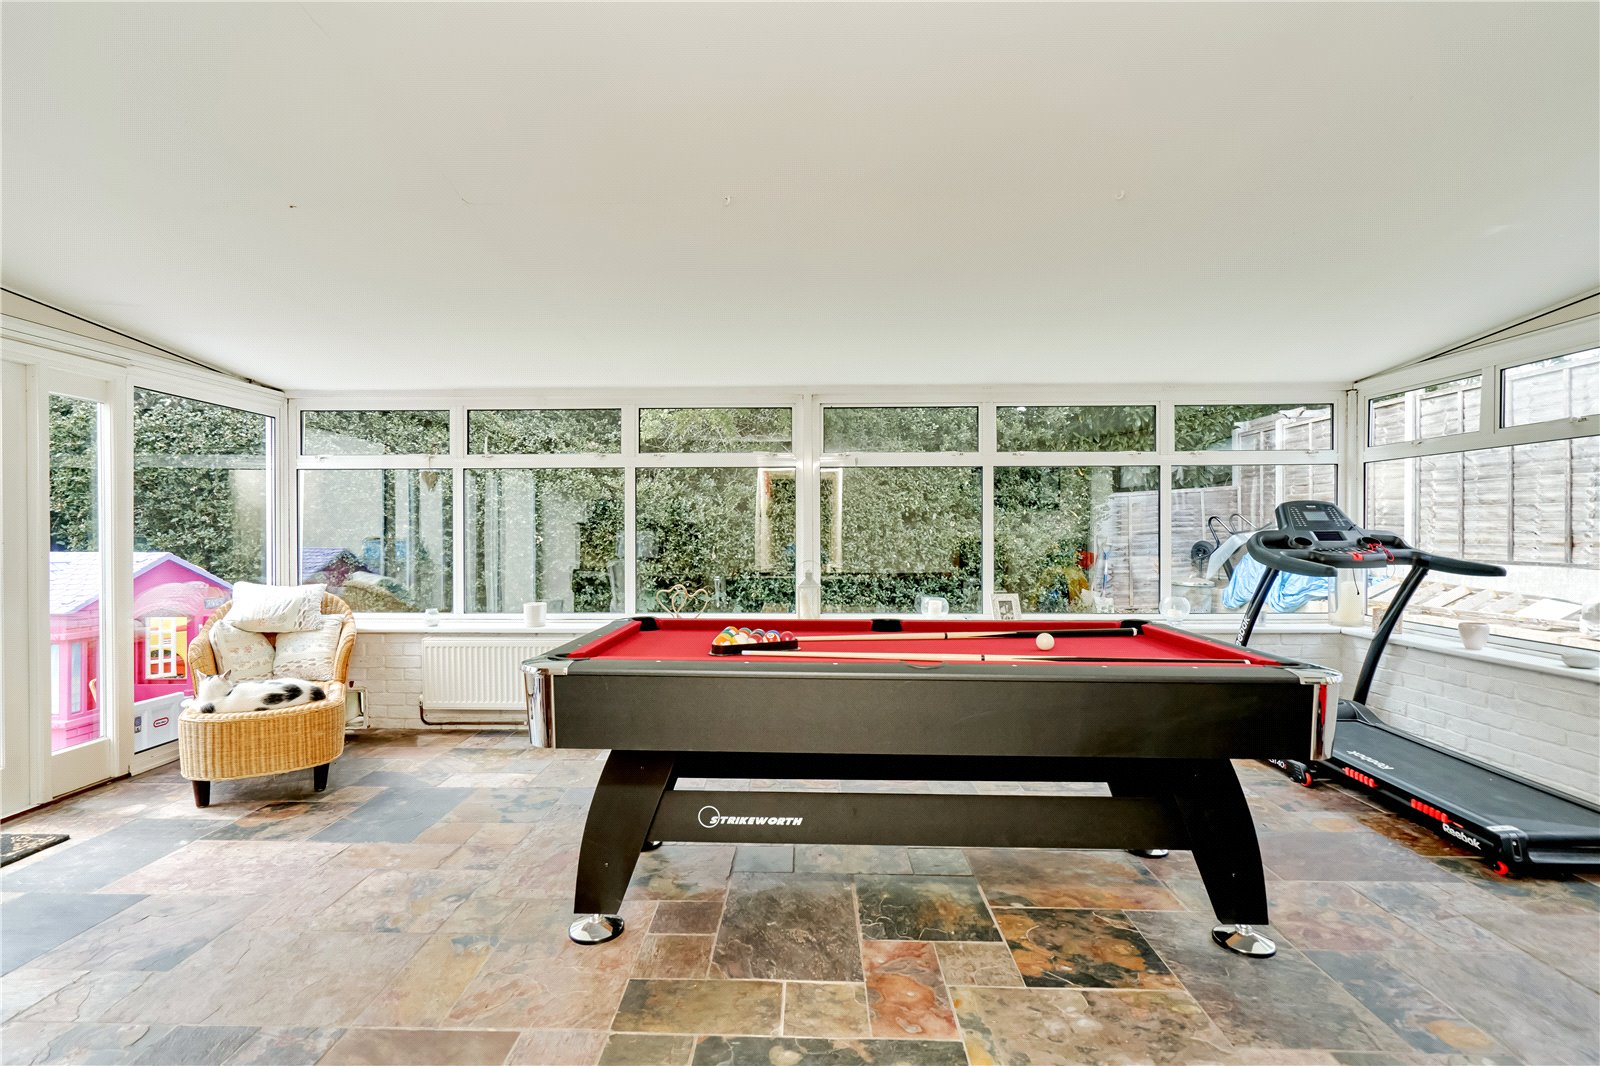 4 bed house for sale in Welwyn, AL6 0QG  - Property Image 15